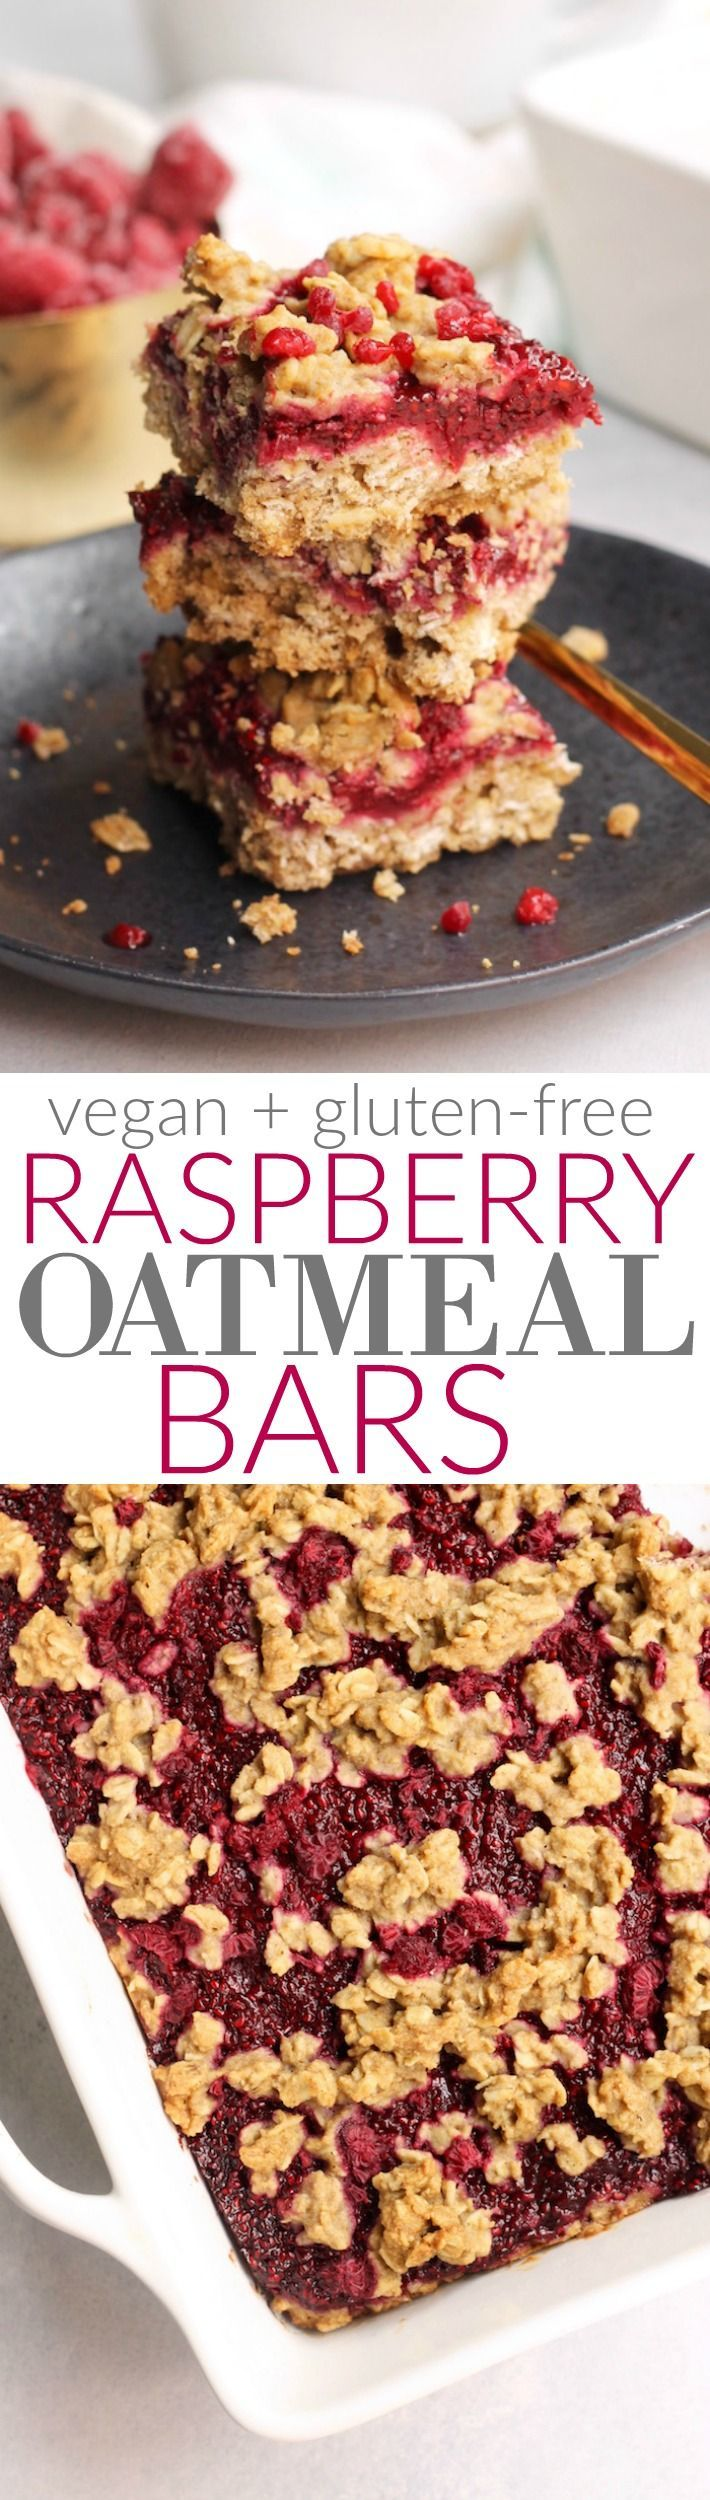 These raspberry oatmeal bars are packed with whole grains, raspberries, and chia seeds for the perfect healthy snack or treat! Vegan and gluten-free.